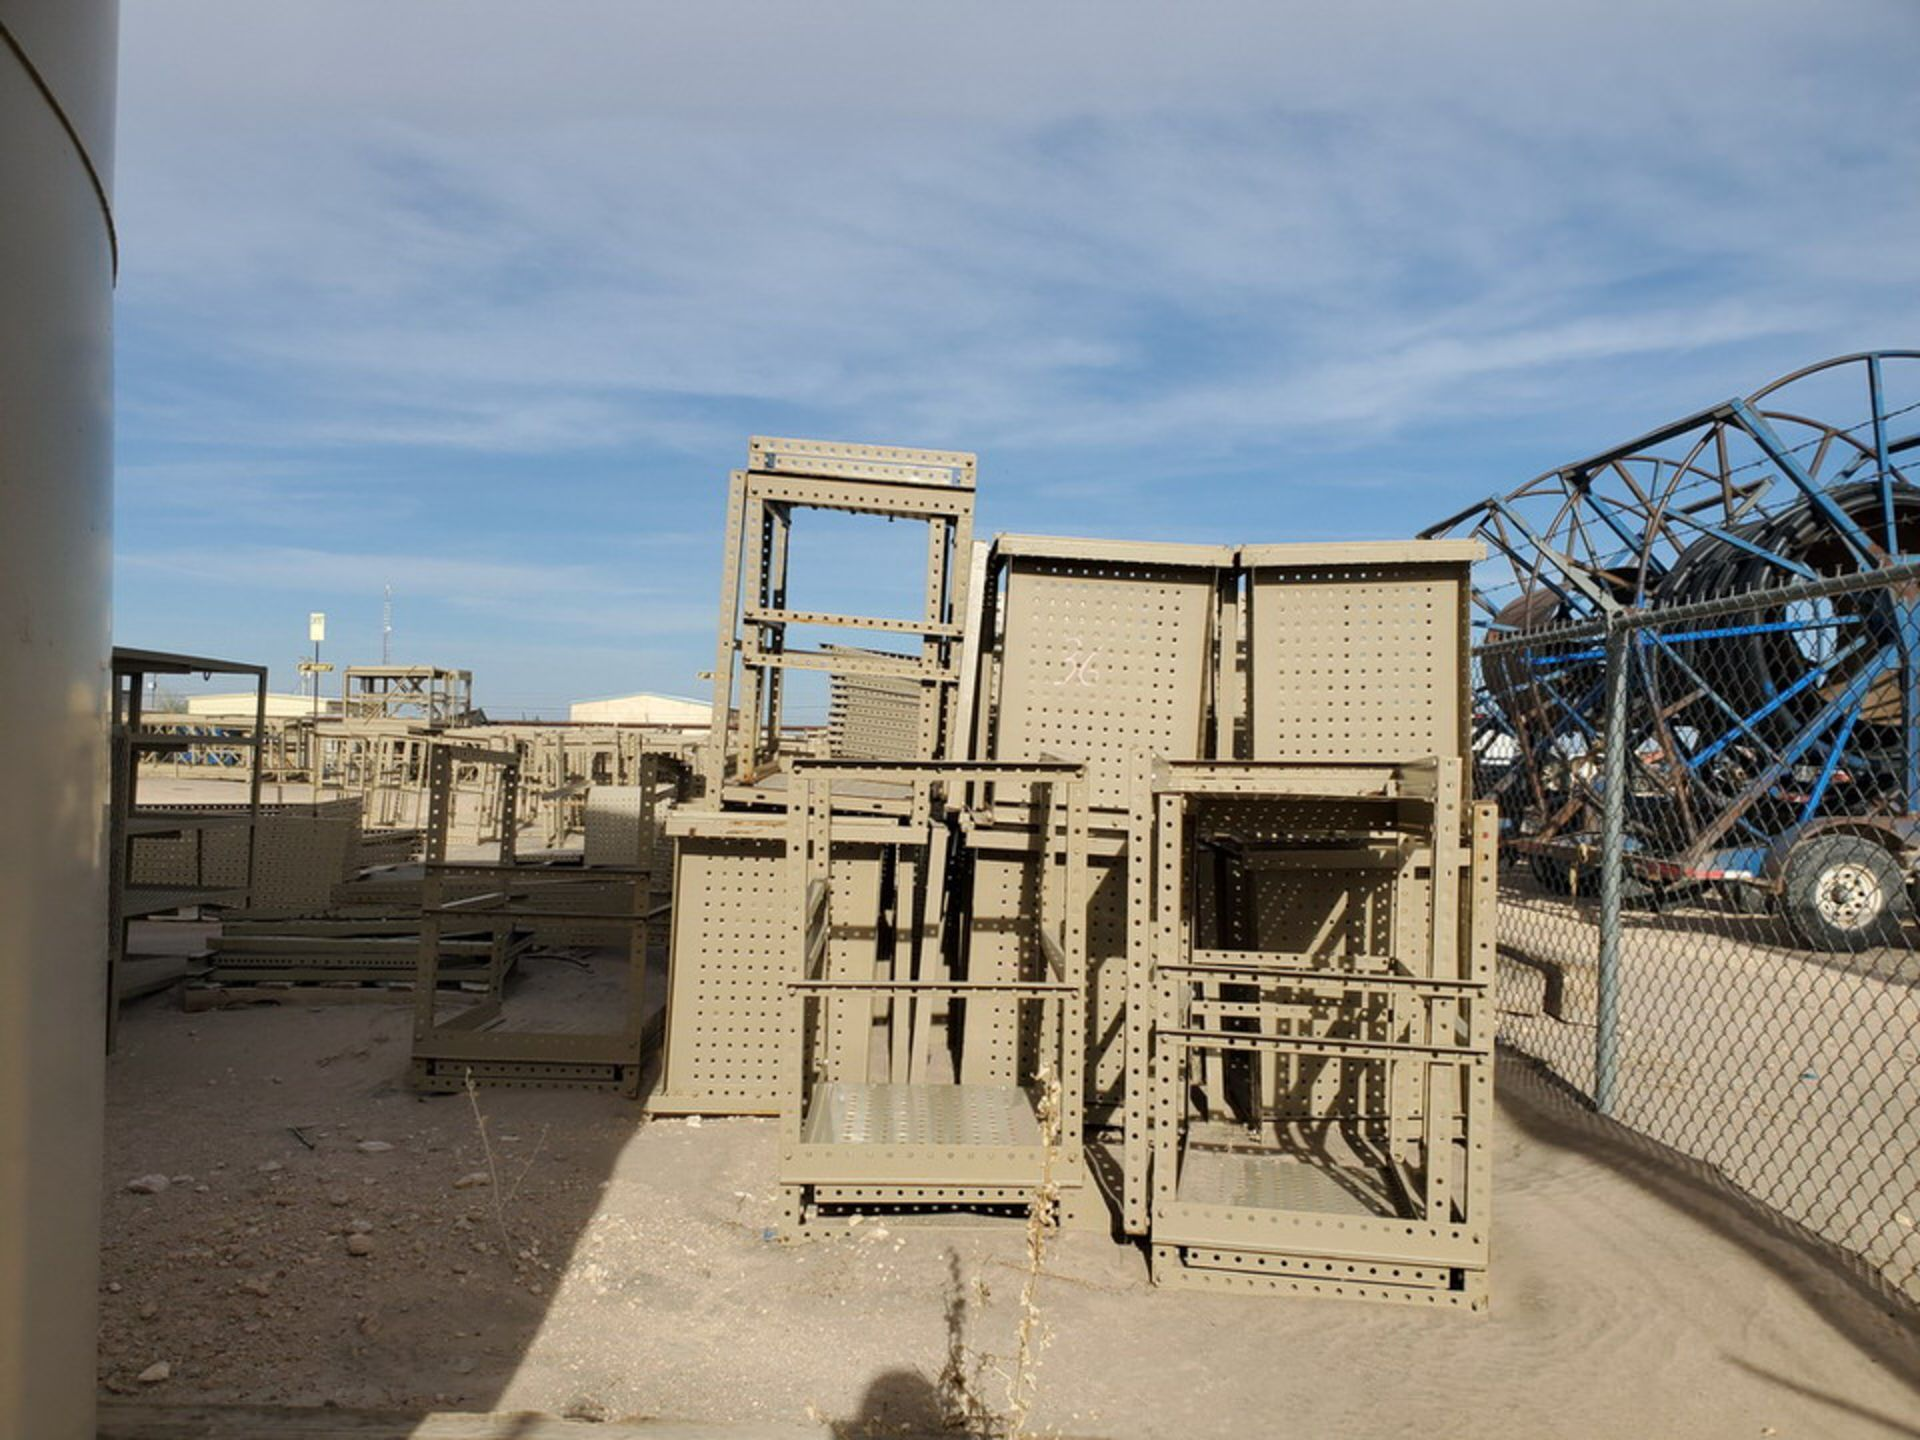 Disassembled Catwalk Sections - Image 12 of 12